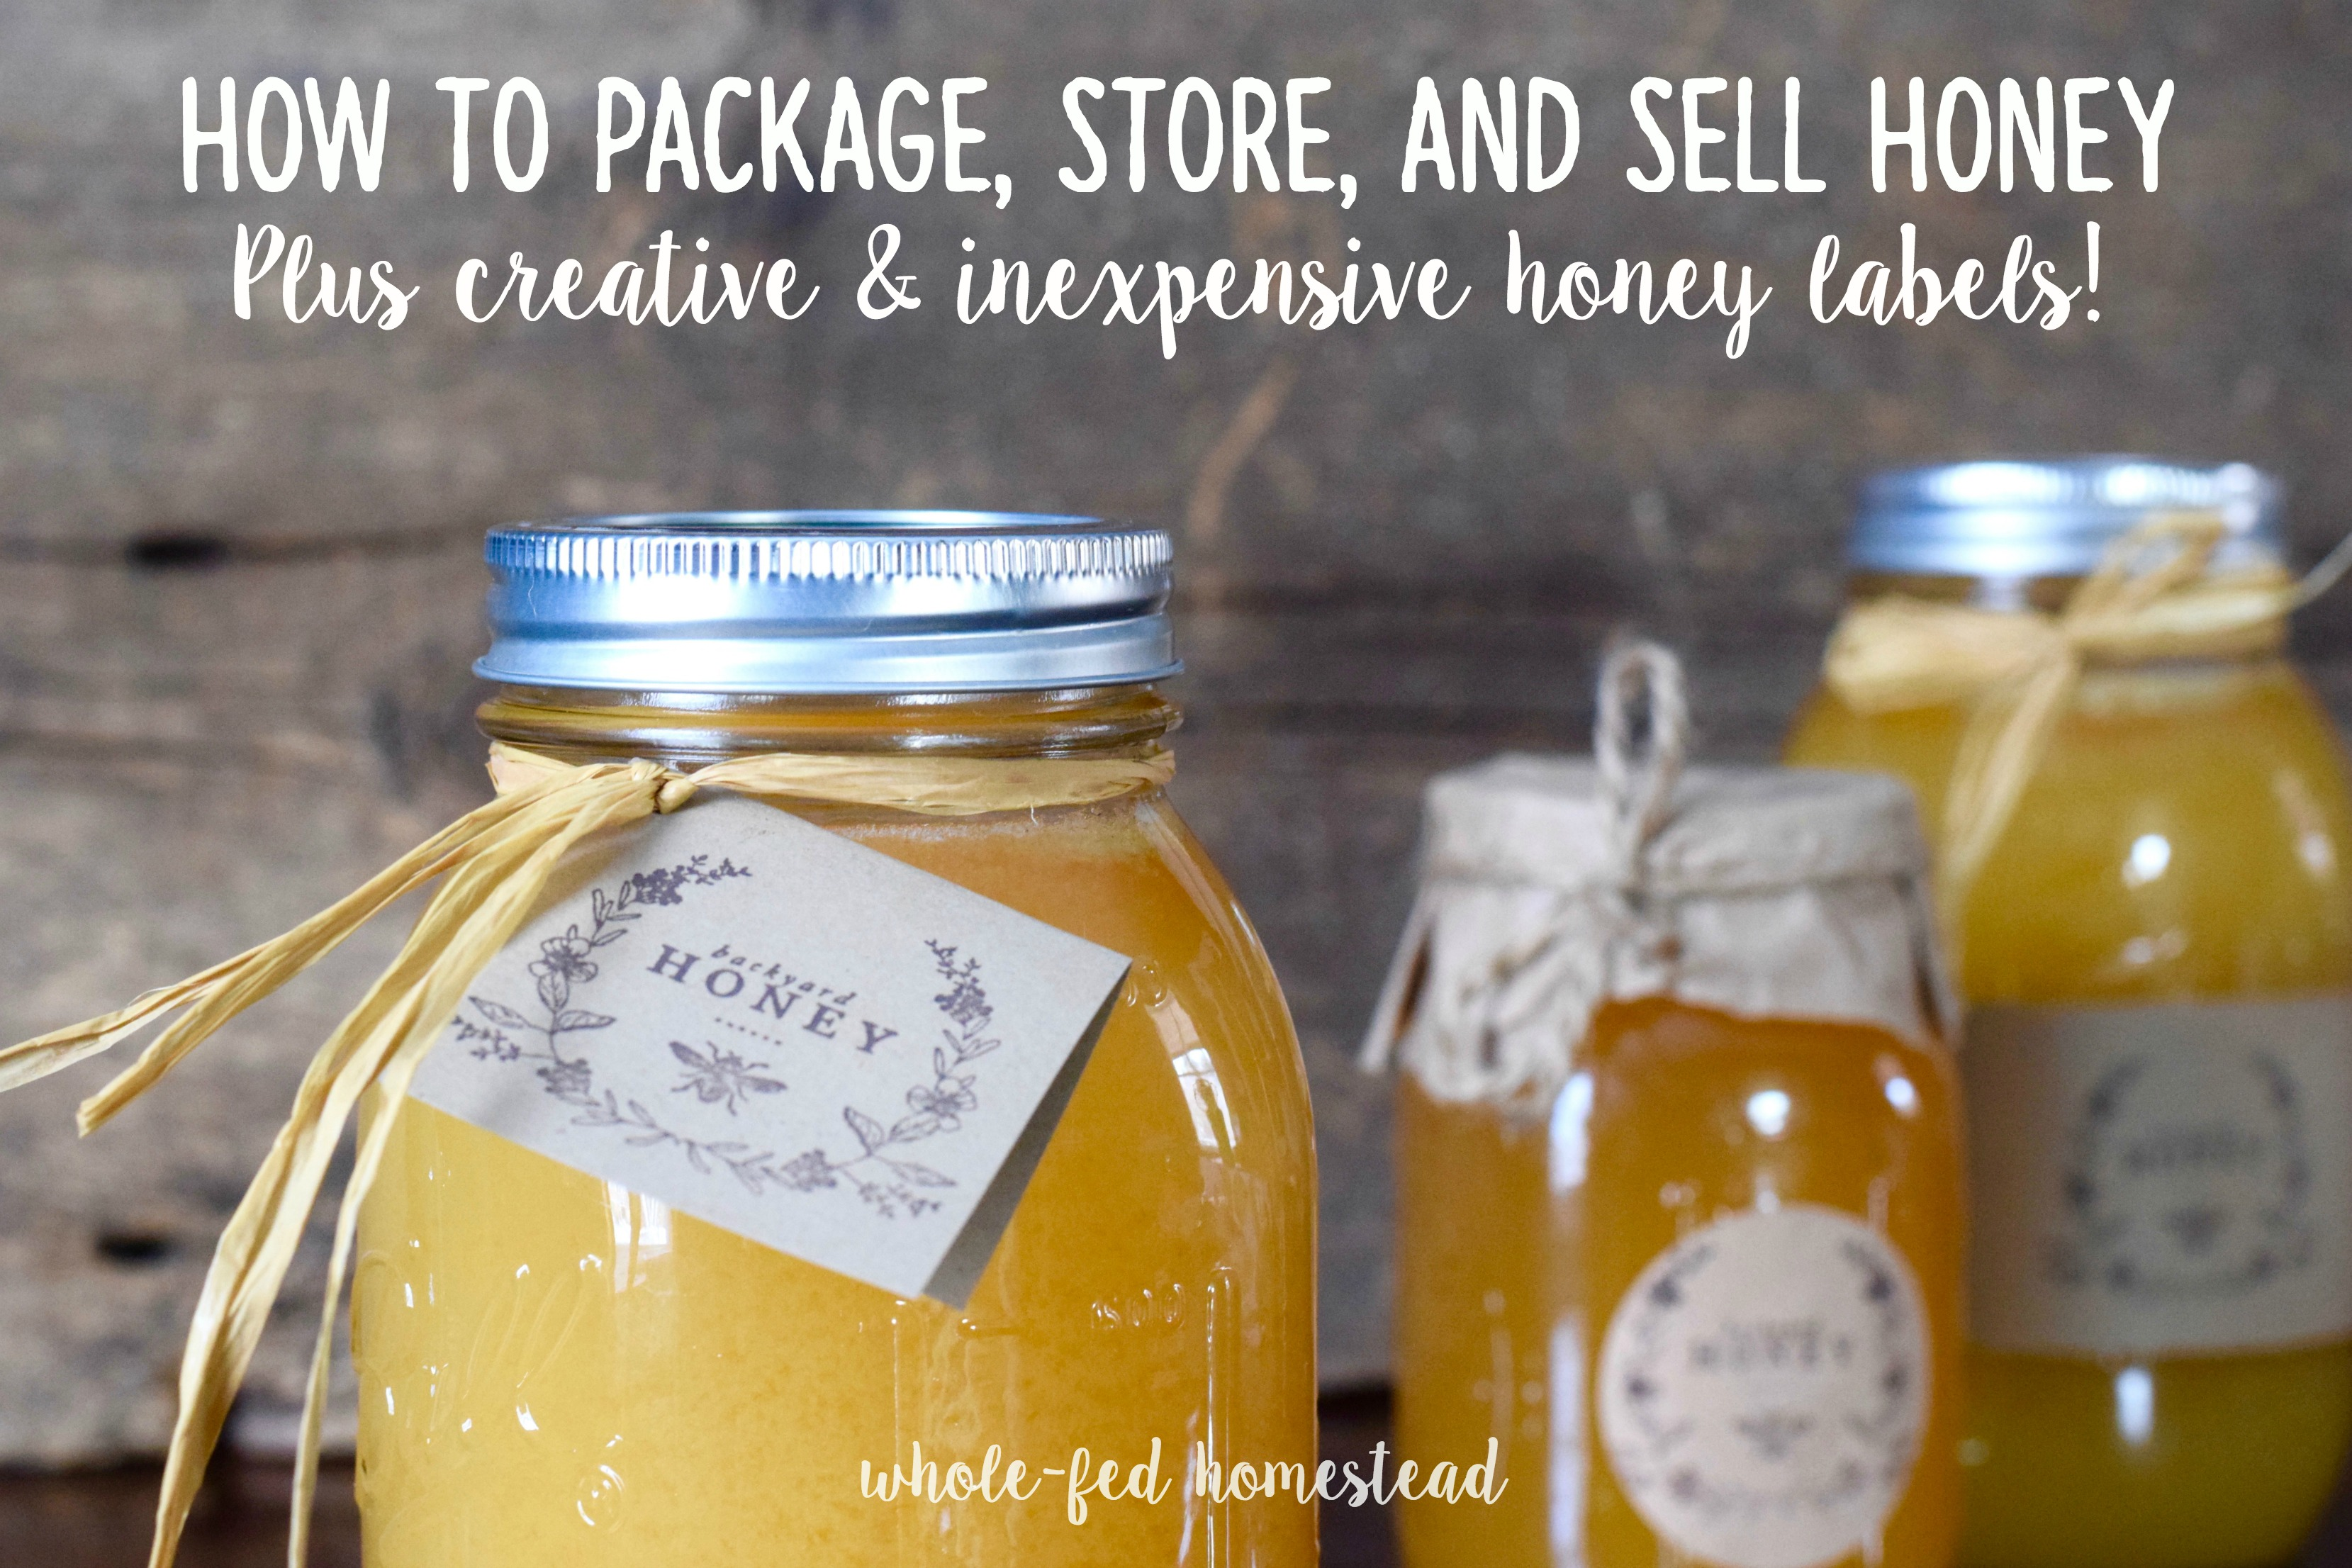 How to package store and sell honey plus creative inexpensive honey labels